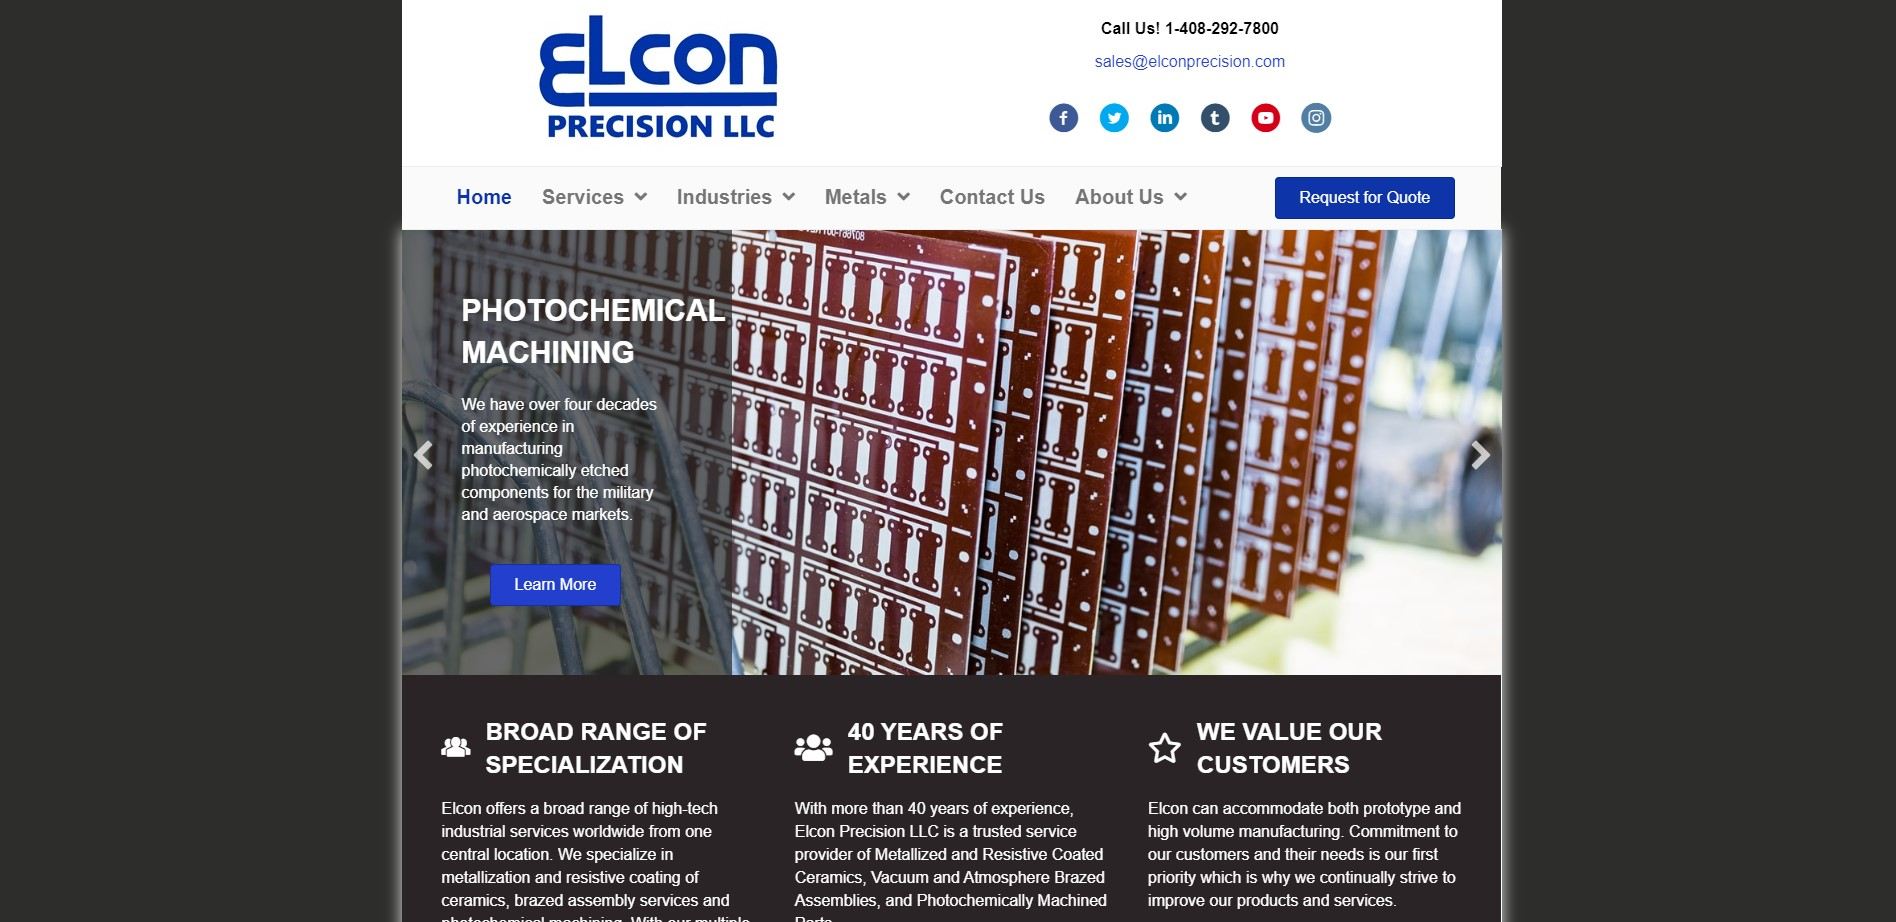 Elcon Precision LLC